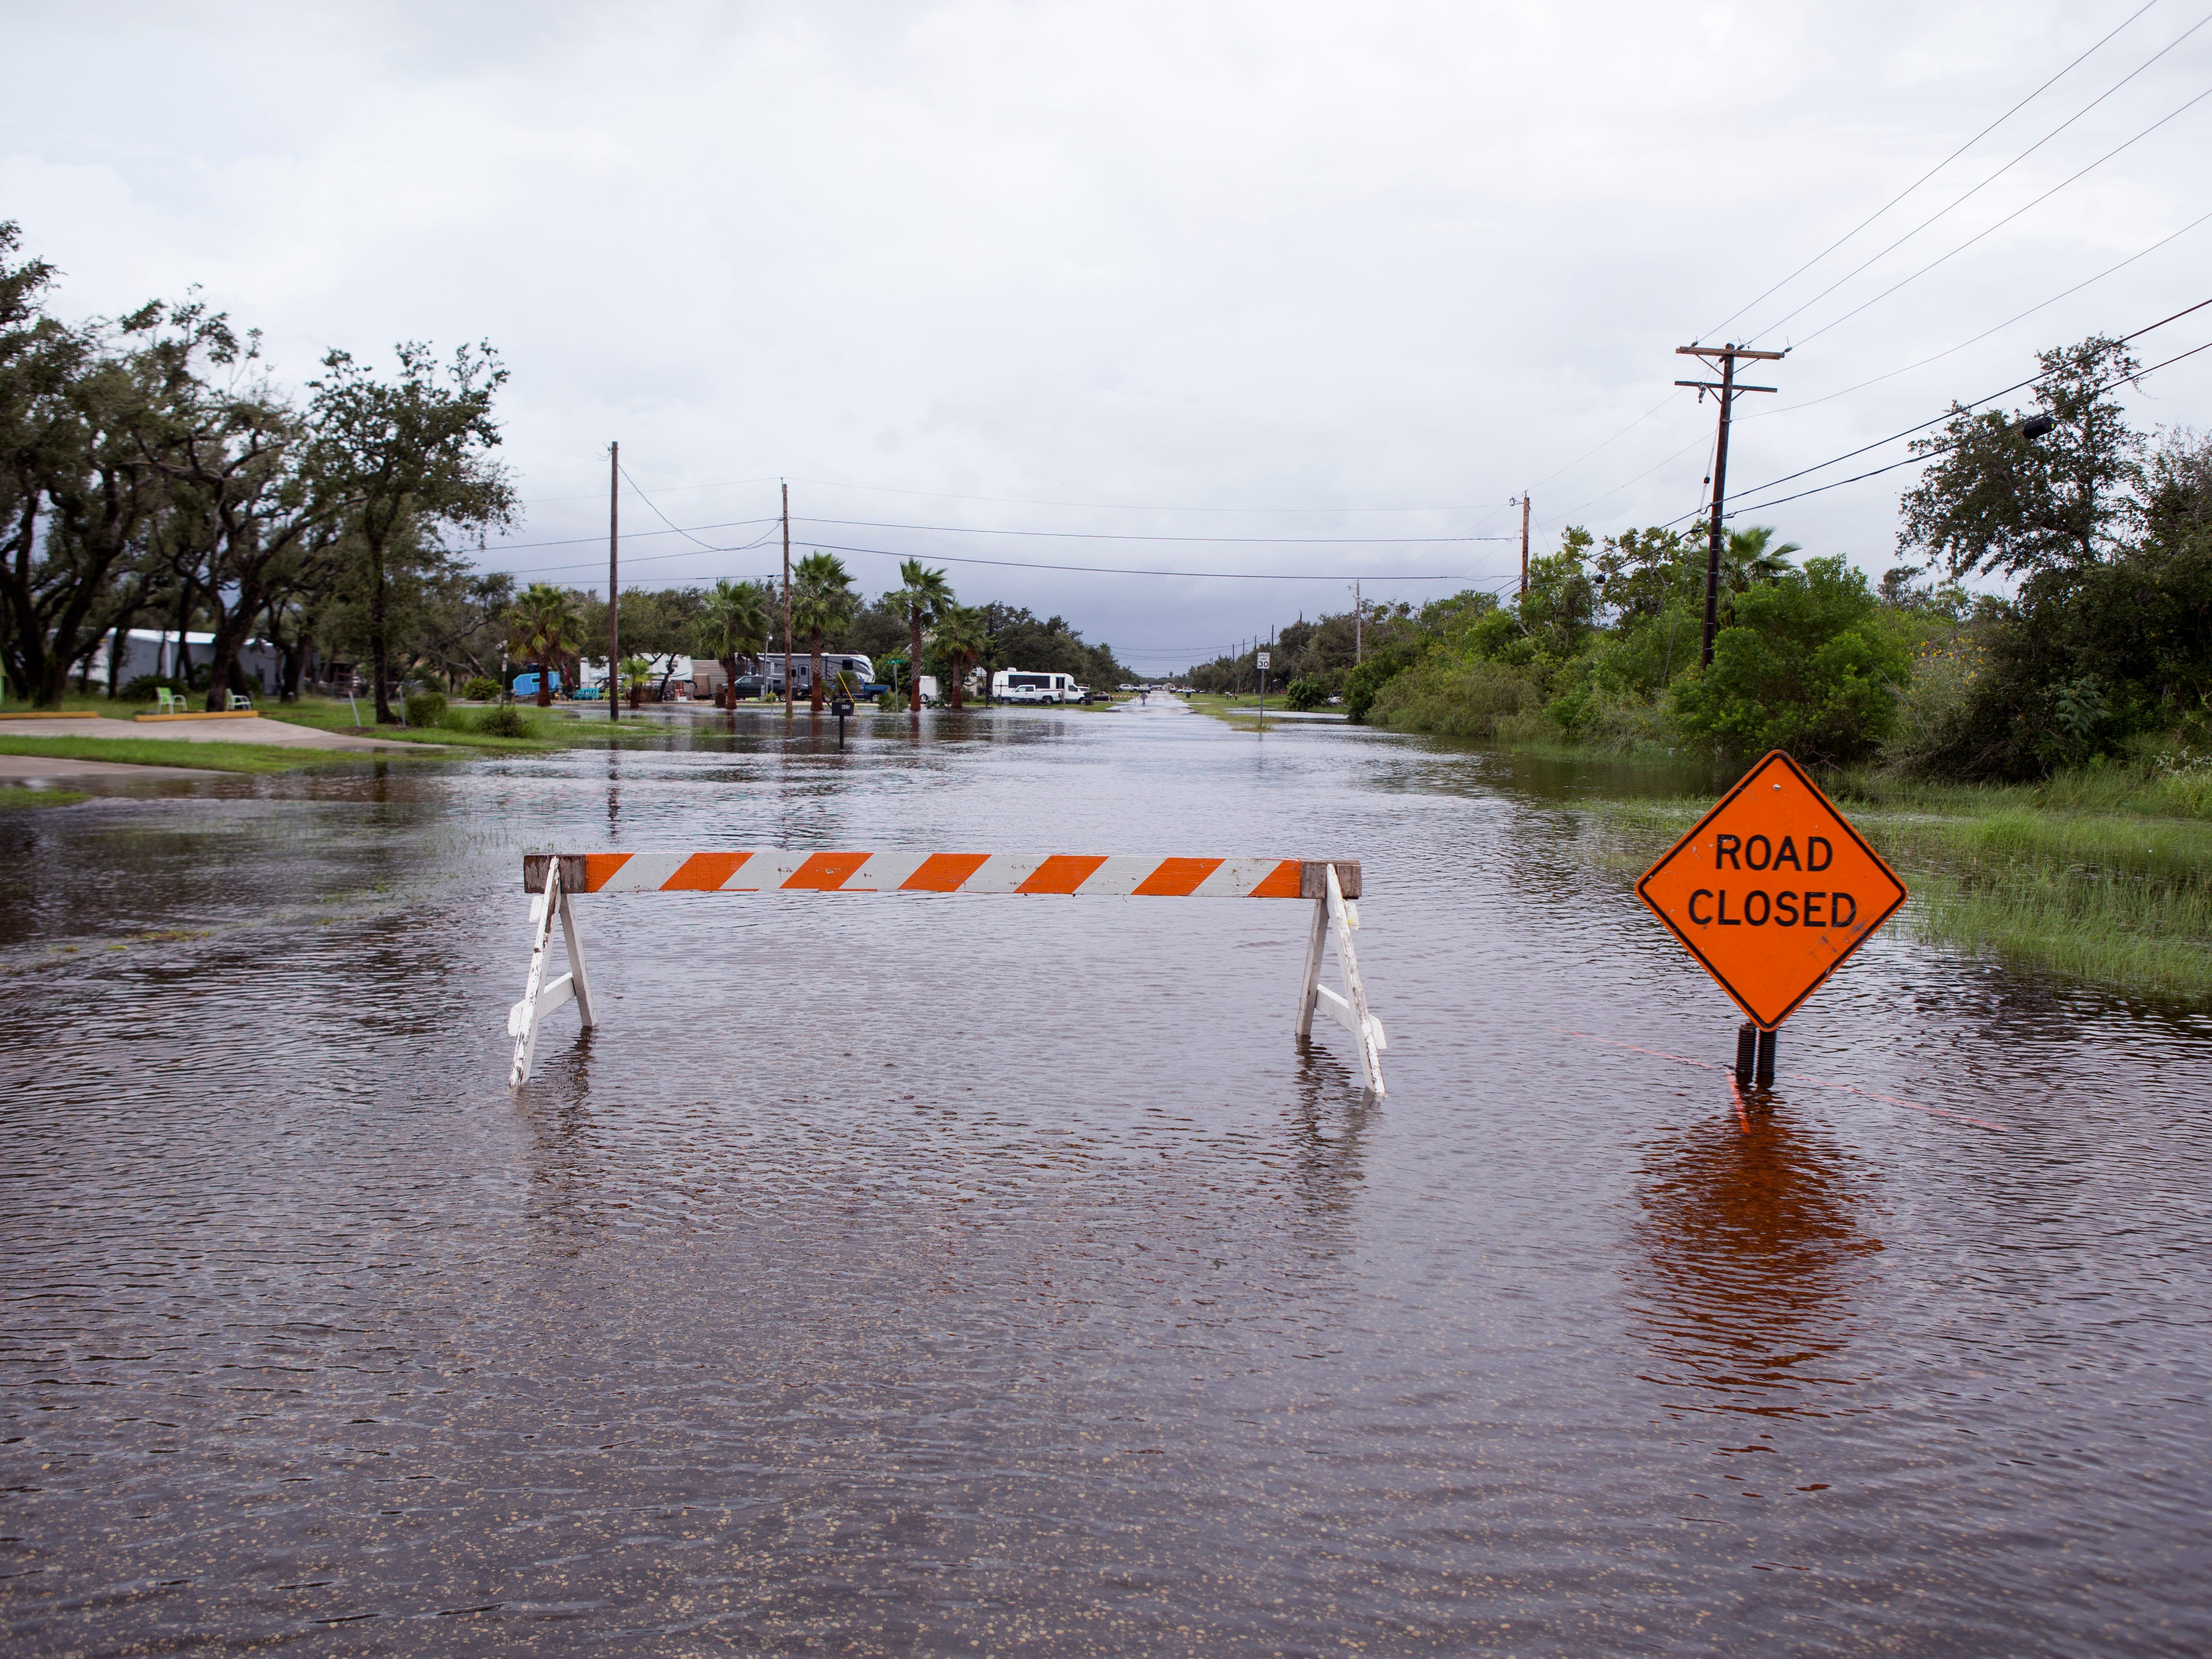 Linden Road in Rockport was closed due to high water on Saturday, September 15, 2018.